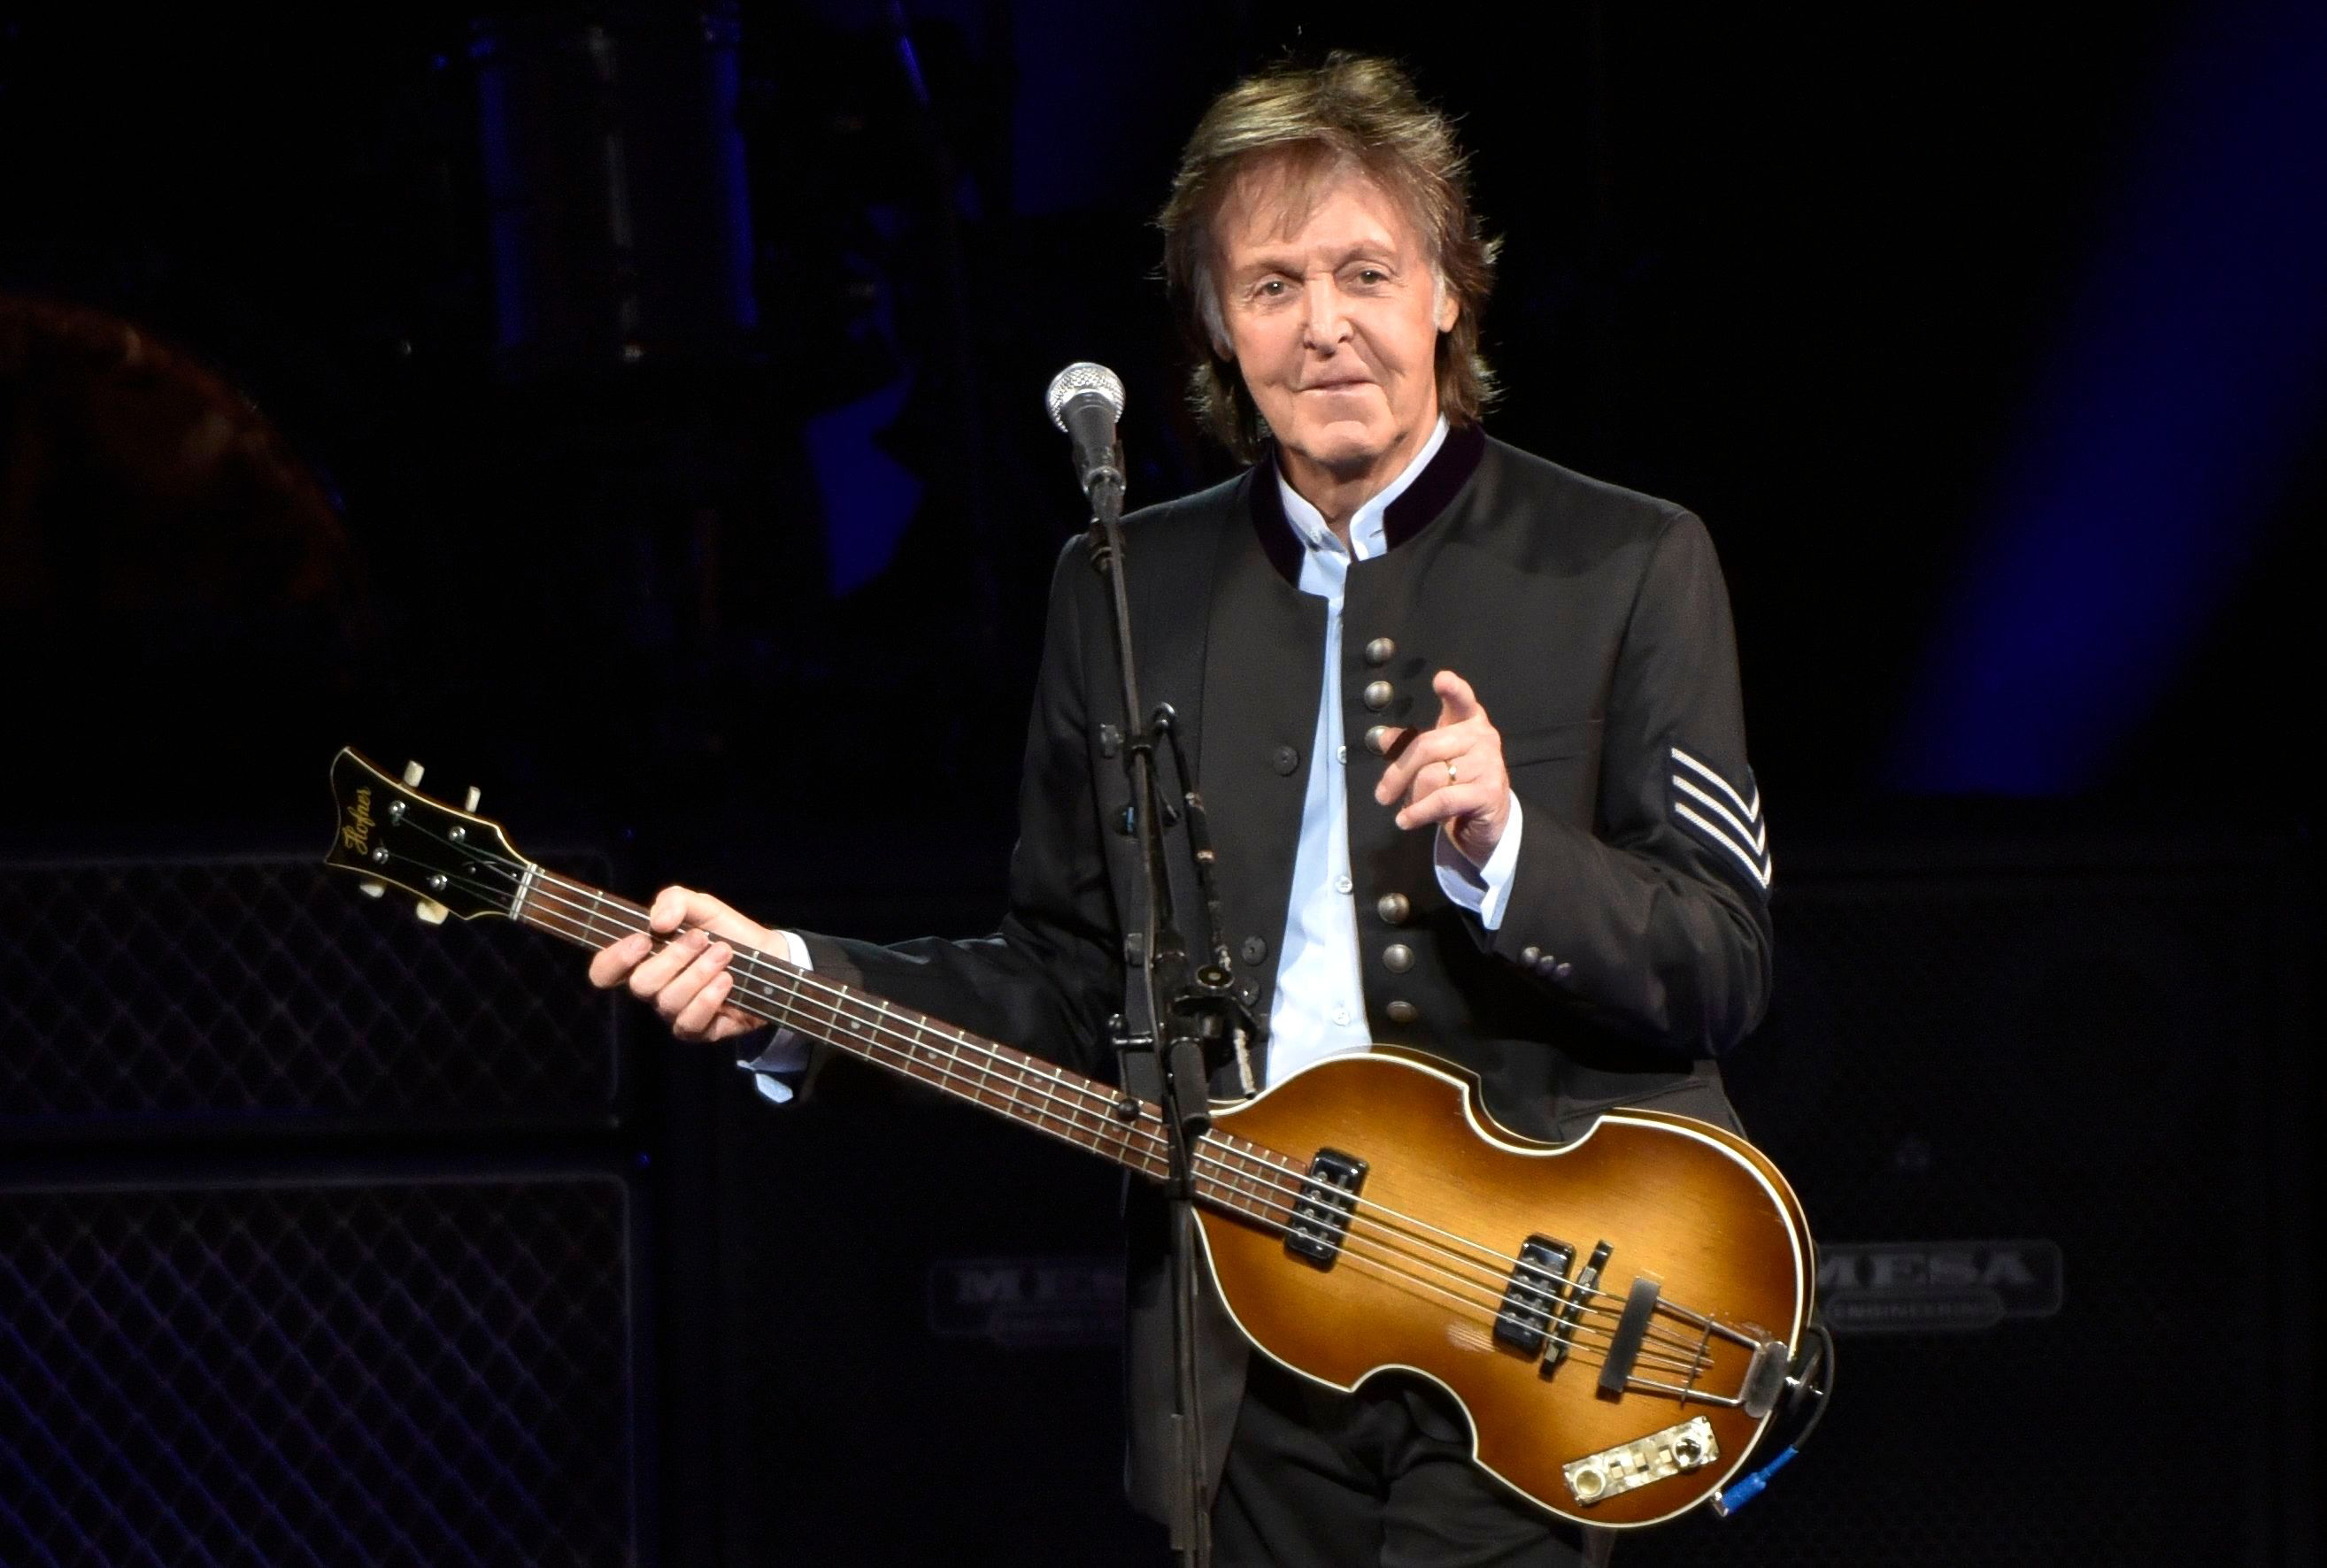 "Paul McCartney performs on the One on One Tour at the Hollywood Casino Amphitheatre in Tinley Park, Ill. It was a magical mystery tour as McCartney led James Corden through his hometown during a ""Carpool Karaoke"" segment on CBS' ""Late Late Show."" The program, wrapped up a weeklong stay in London and the Beatles legend joined Corden for a drive around LiverpoolPaul McCartney Carpool Karaoke, Tinley Park, USA - 27 Jul 2017"